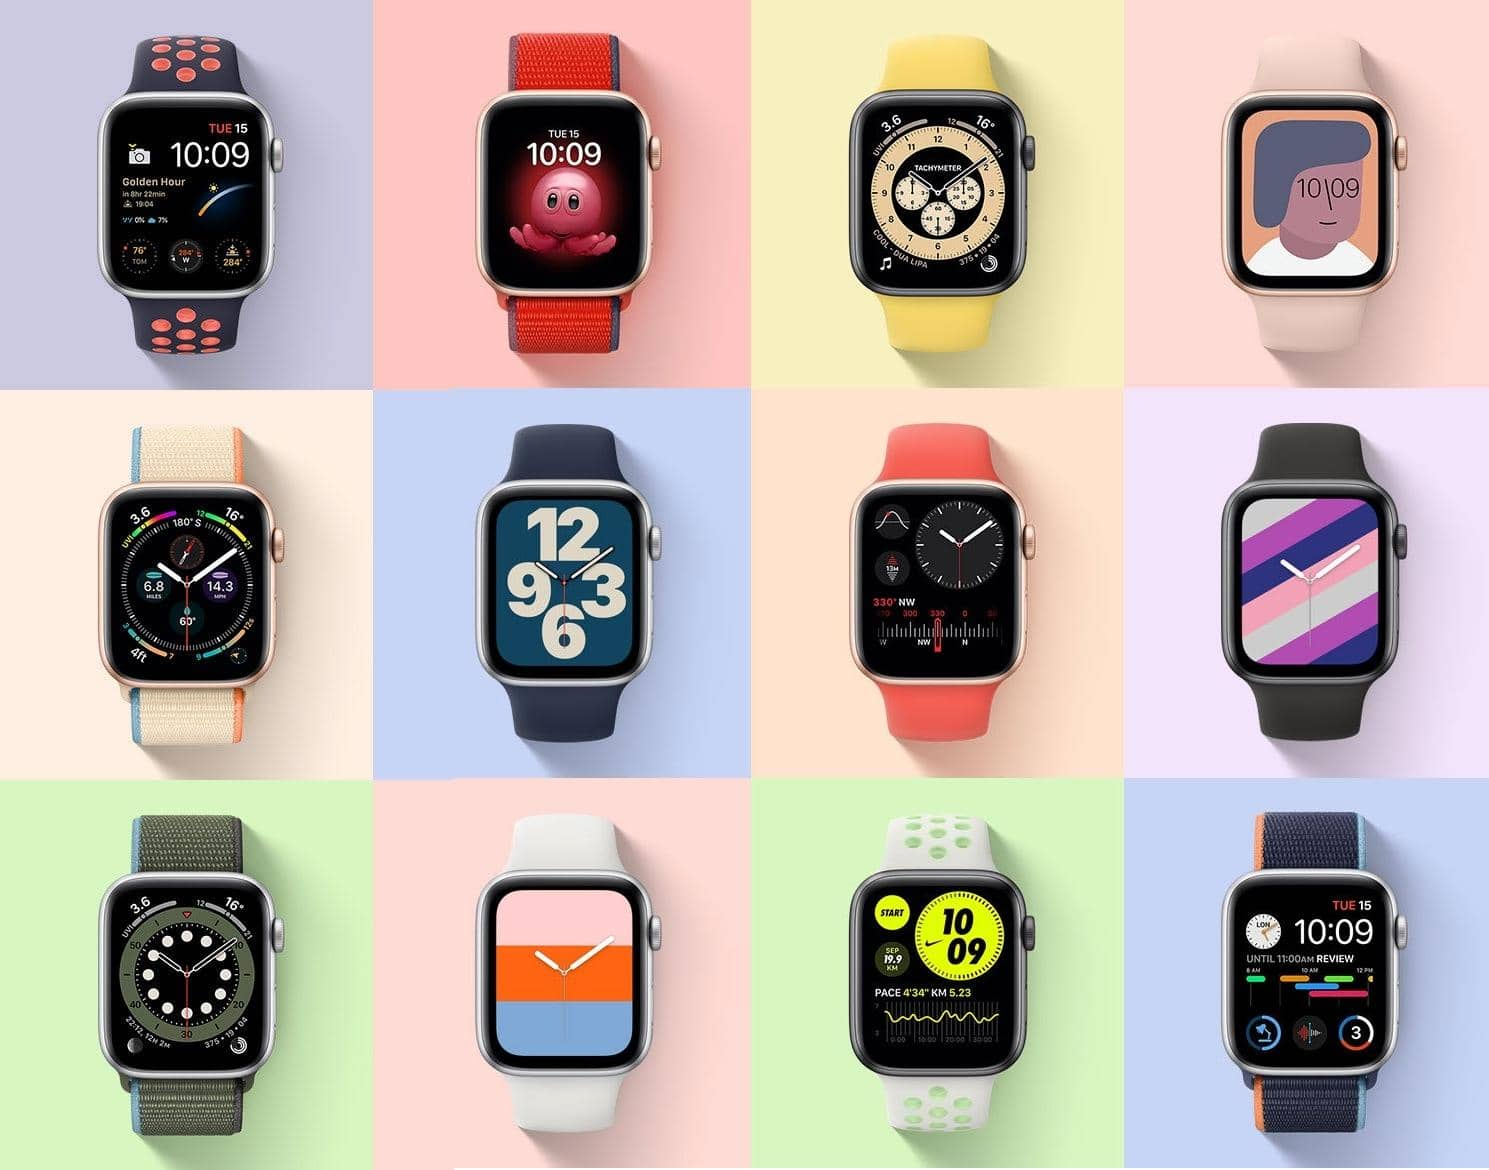 APPLE WATCH SE REVIEW: BACK TO BASICS WITH A BLANK SCREEN